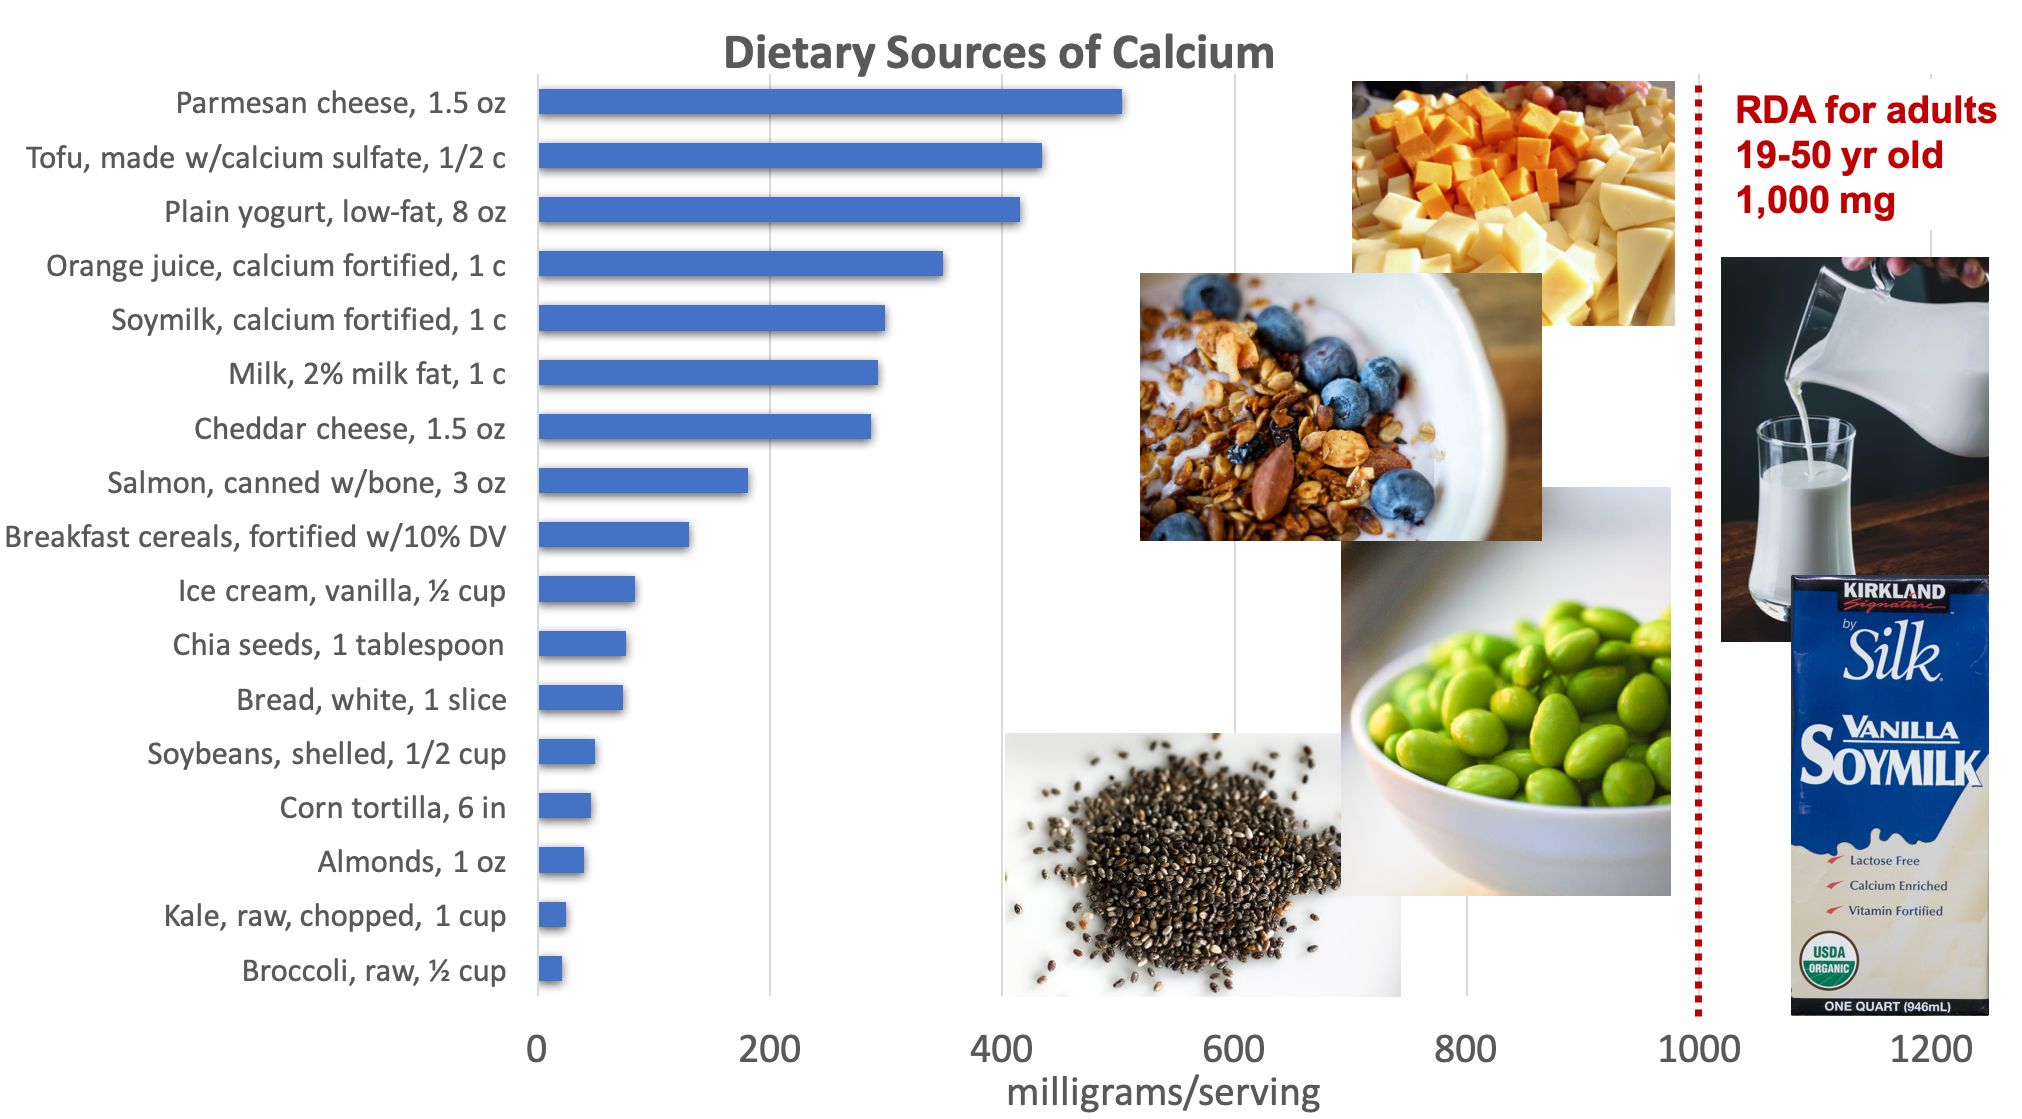 Bar graph showing dietary sources of calcium compared with the RDA adults of 1,000 mg. Top sources include cheese, tofu, yogurt, fortified orange juice and soymilk, milk, canned salmon with bones, and fortified breakfast cereals. Food sources pictured include cheese, milk, soymilk, yogurt with almonds, soybeans, and chia seeds.